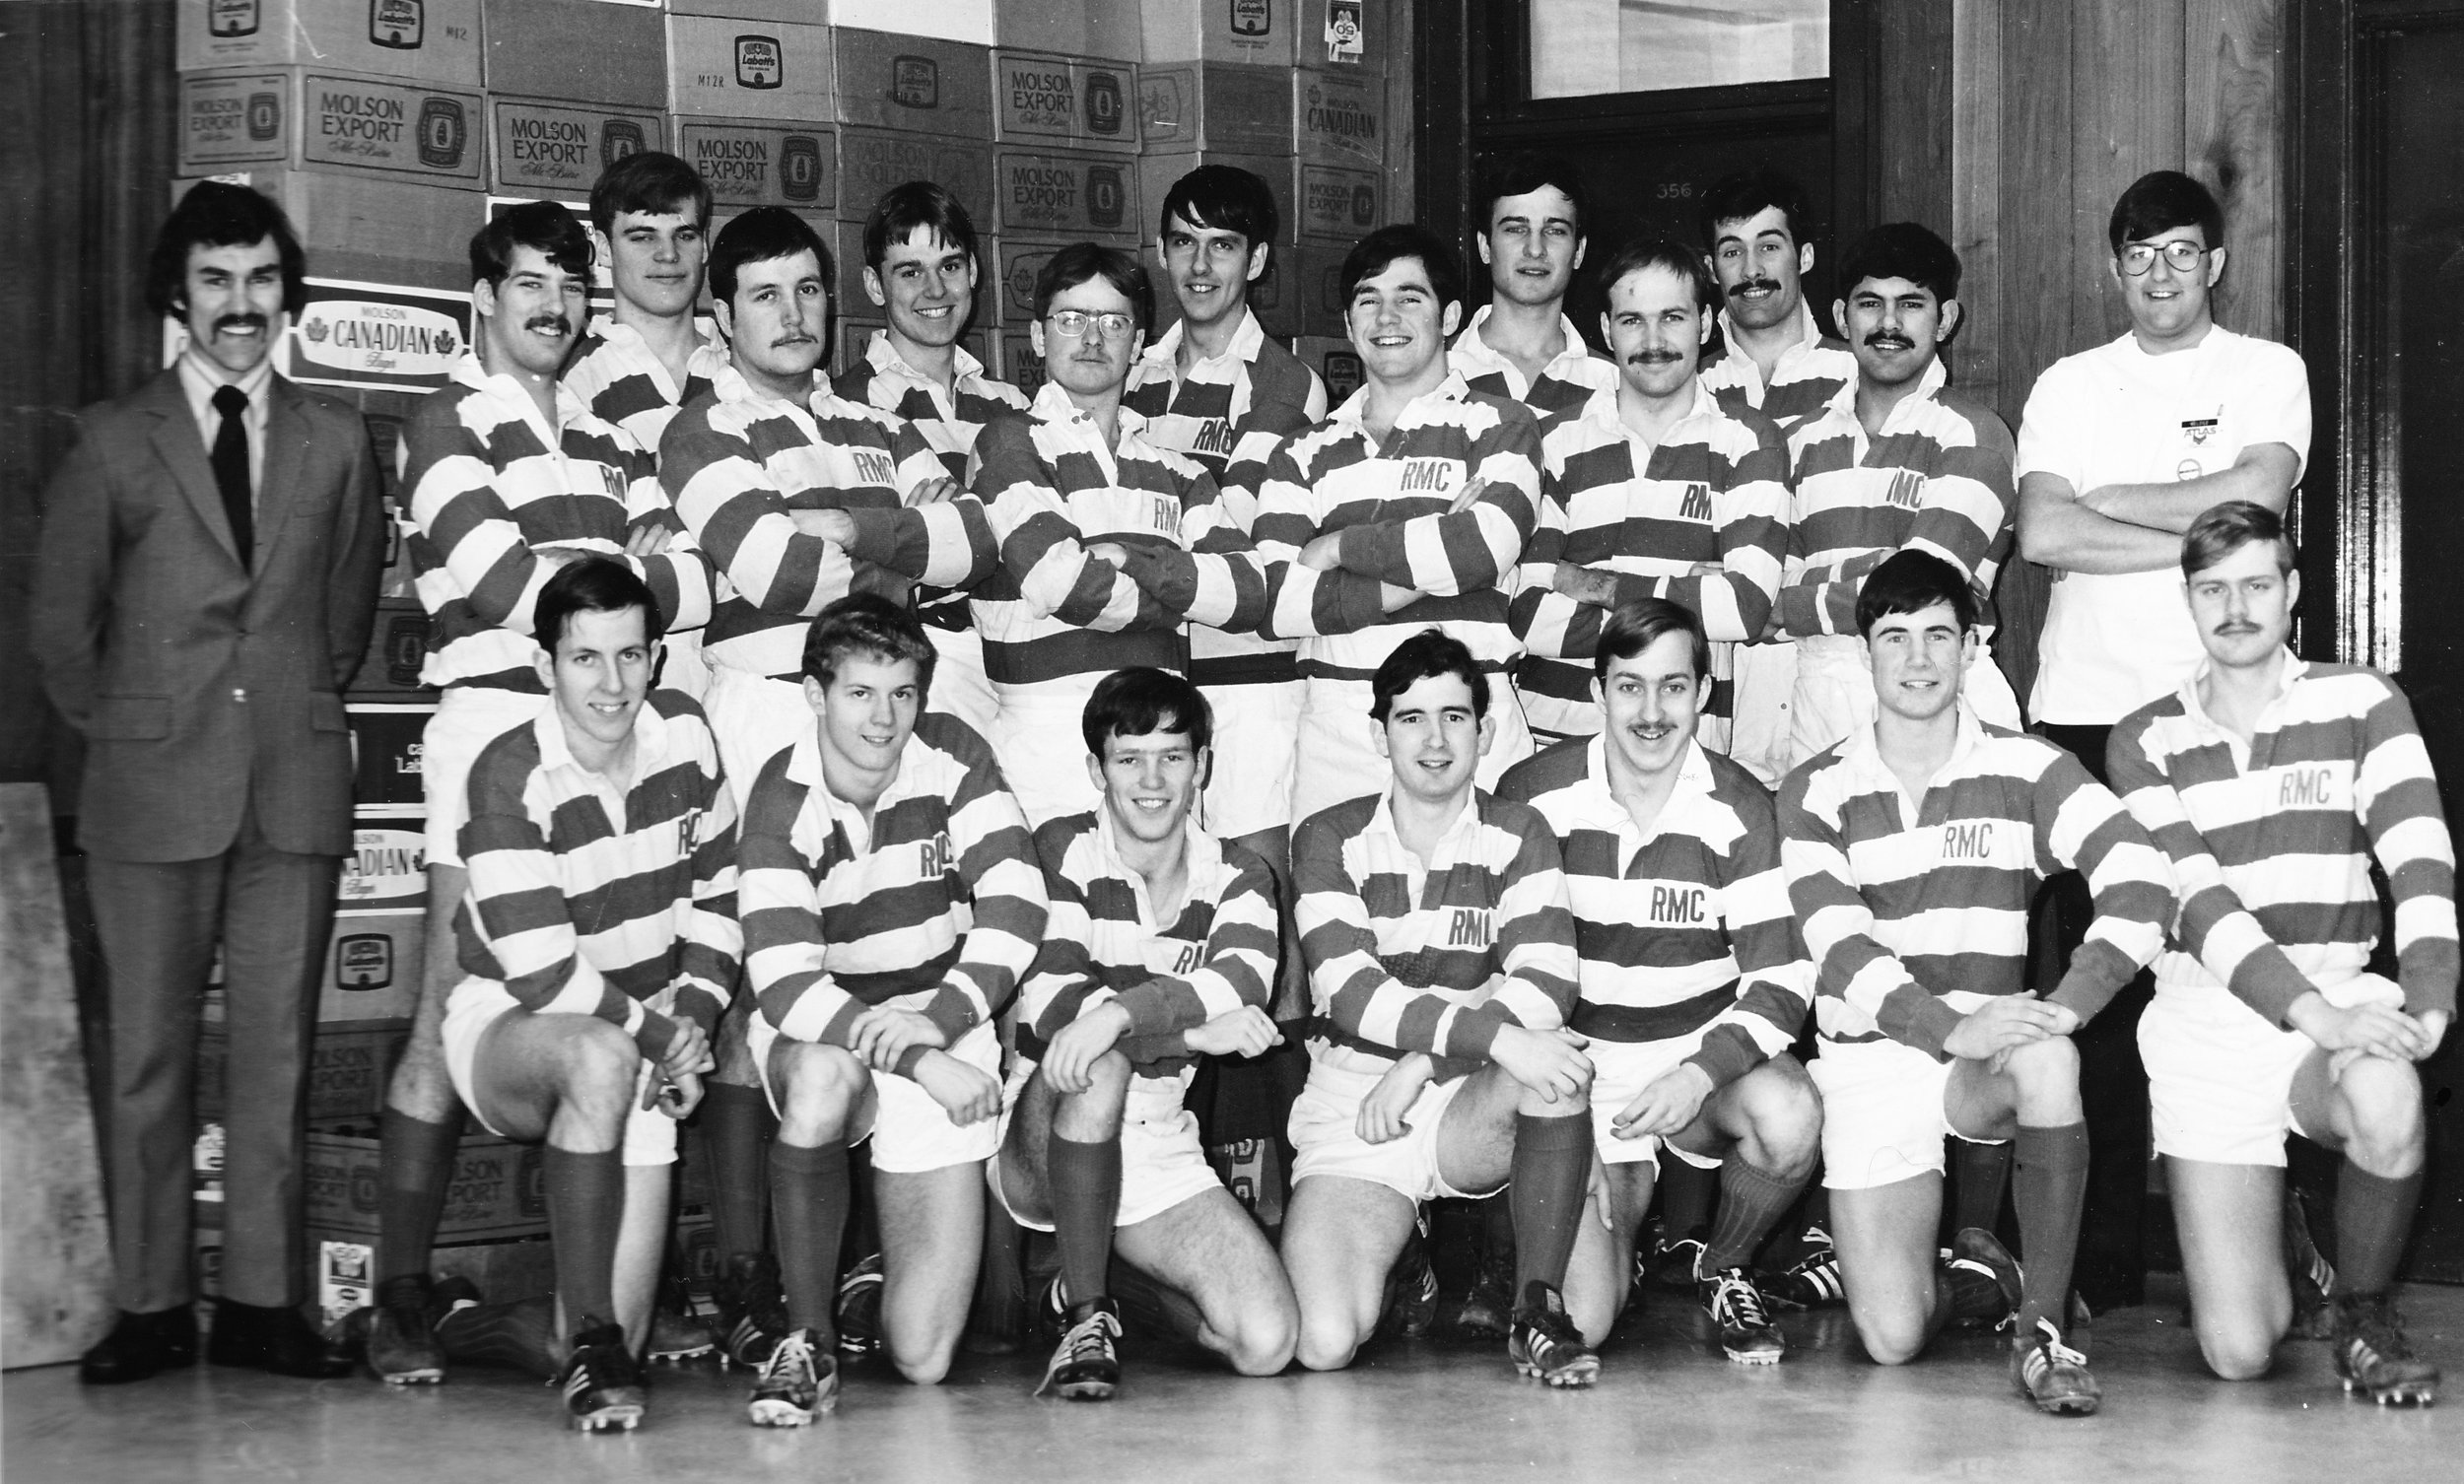 with the rmc rugby team in 1977